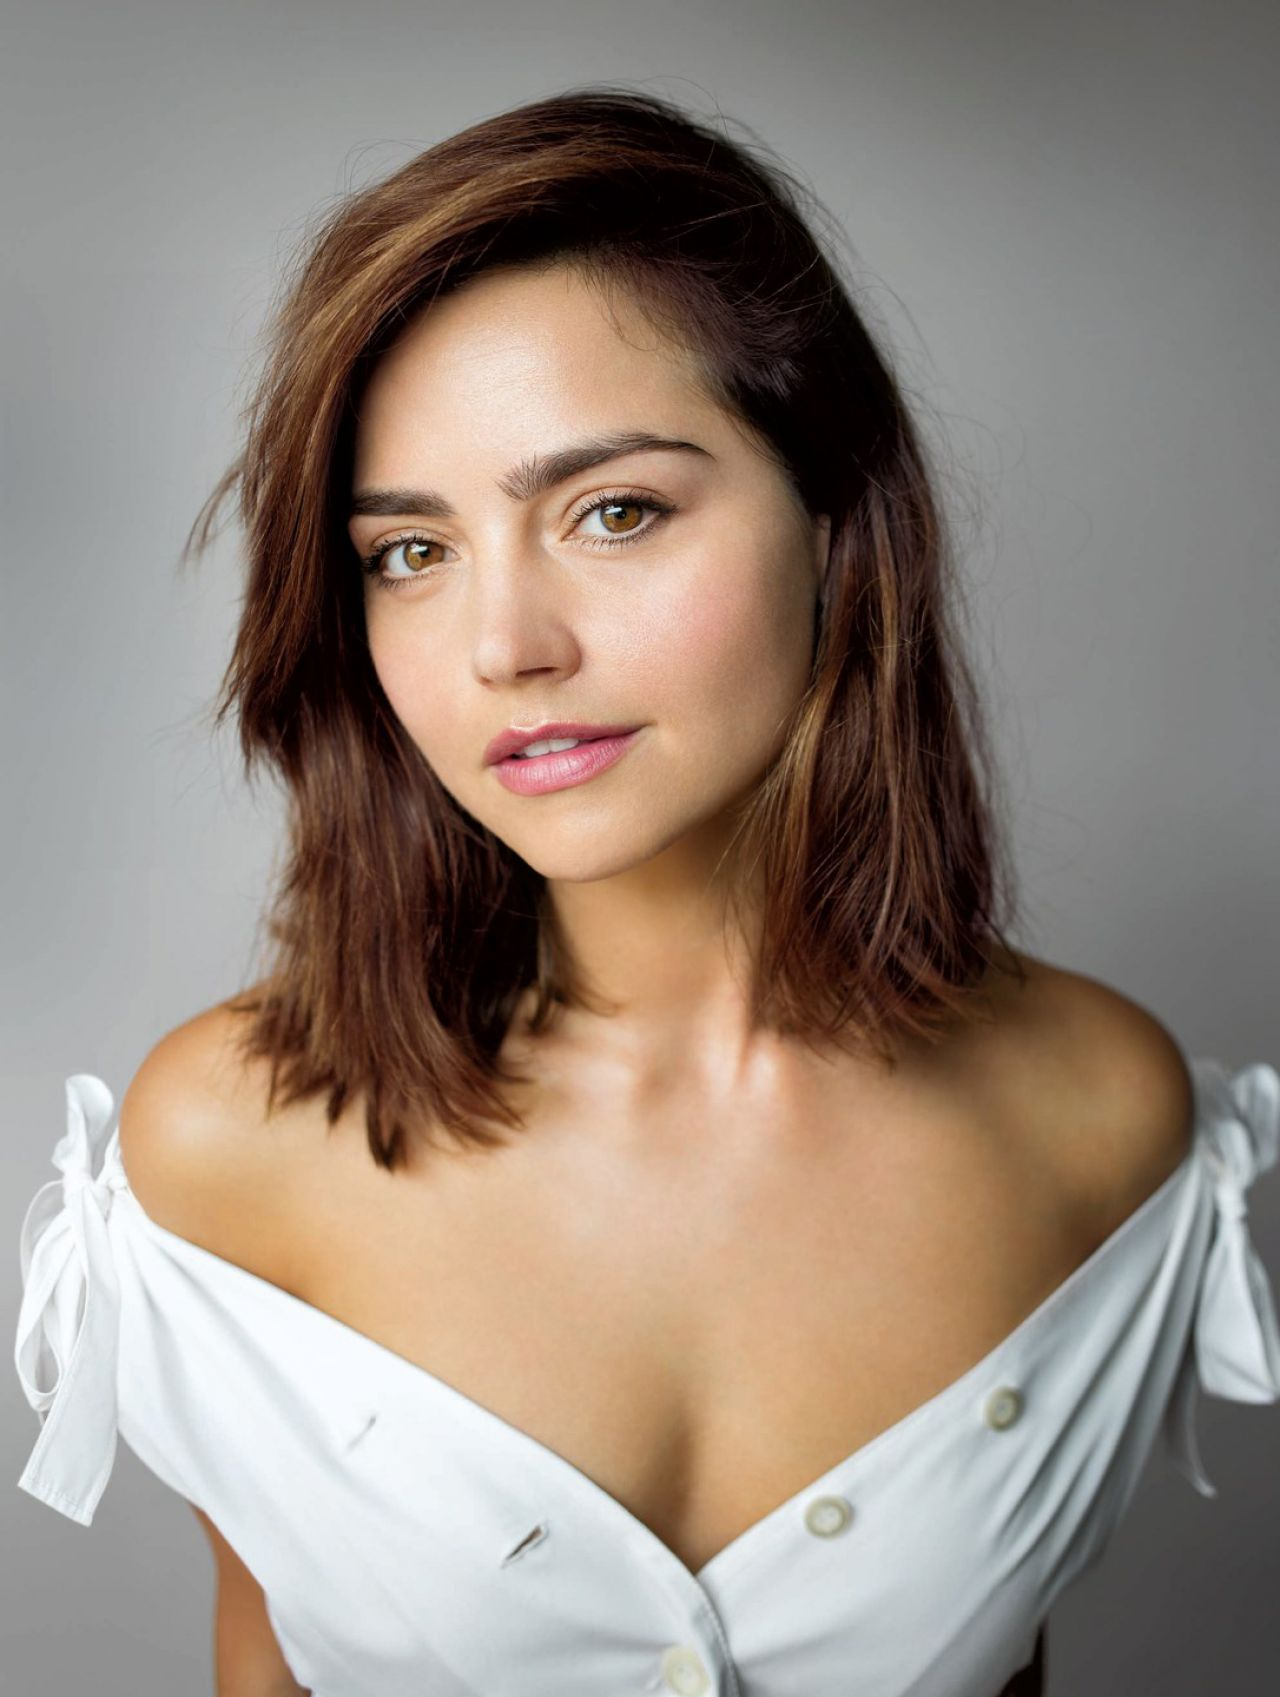 Jenna Coleman Photoshoot For Glamour Uk October 2016